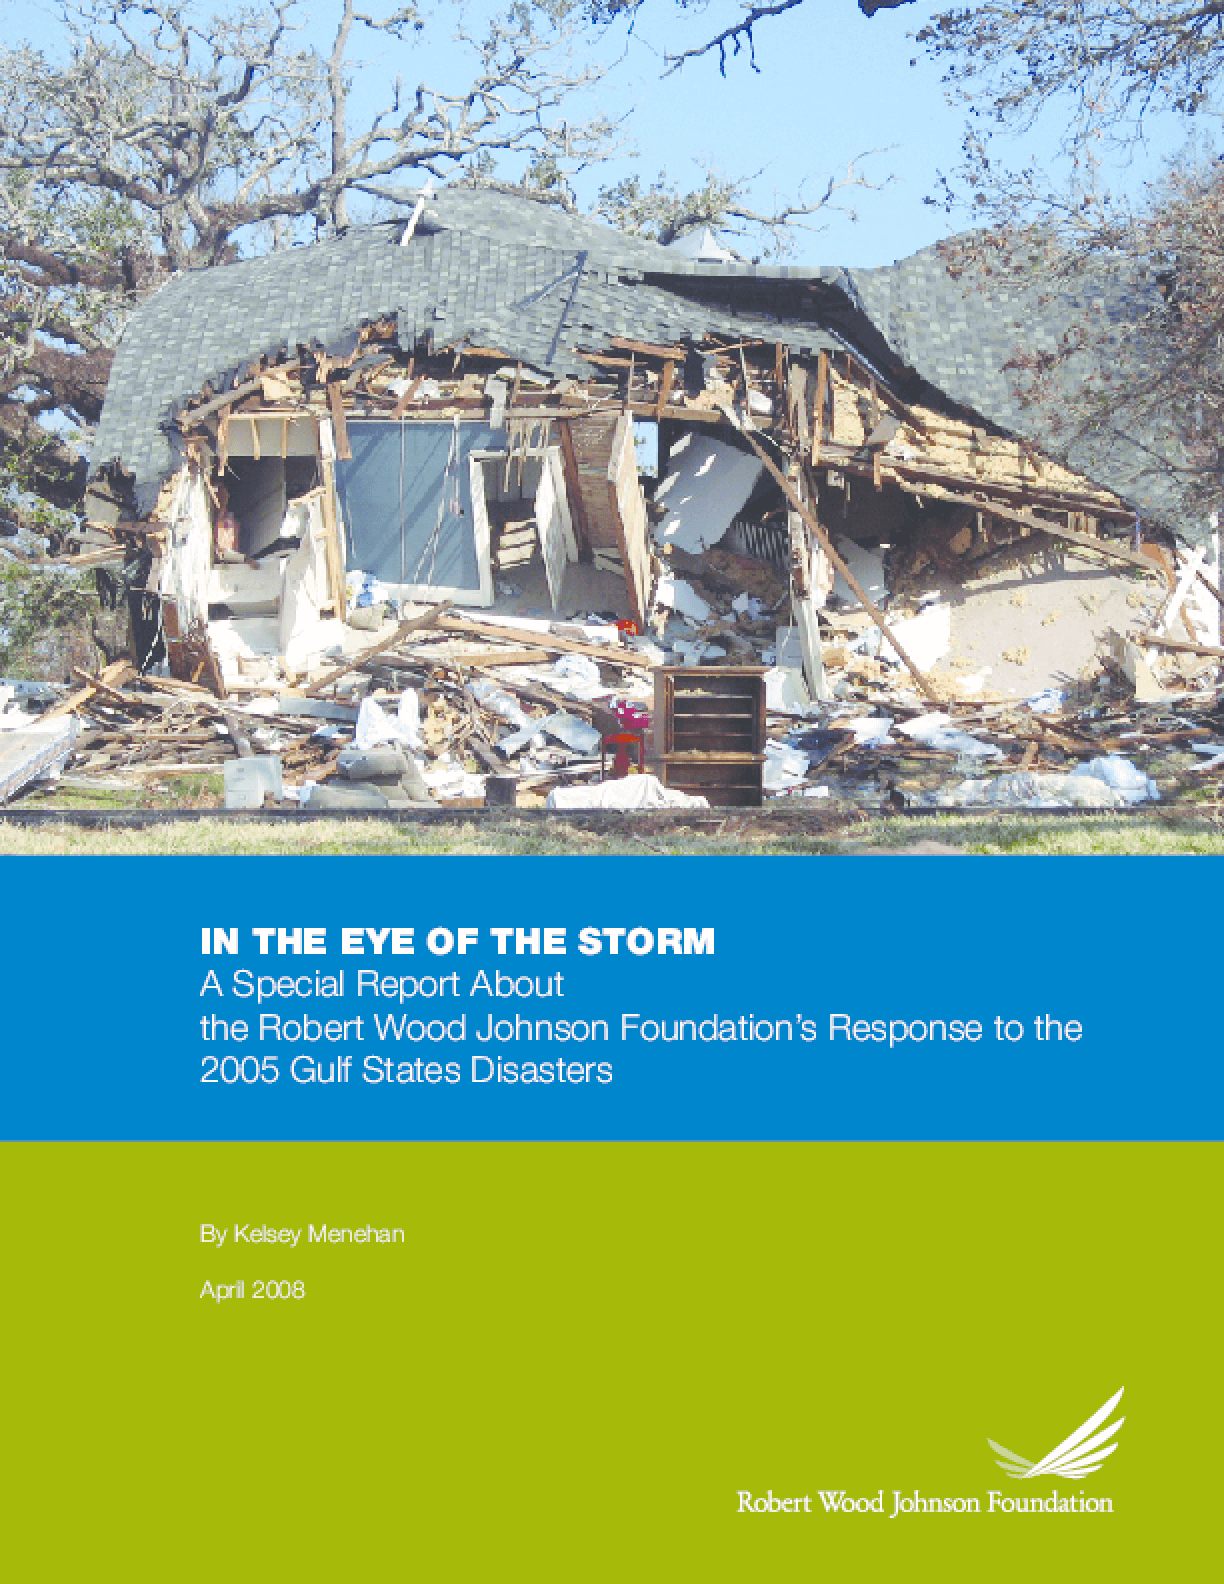 In the Eye of the Storm: A Special Report About the Robert Wood Johnson Foundation's Response to the 2005 Gulf States Disasters